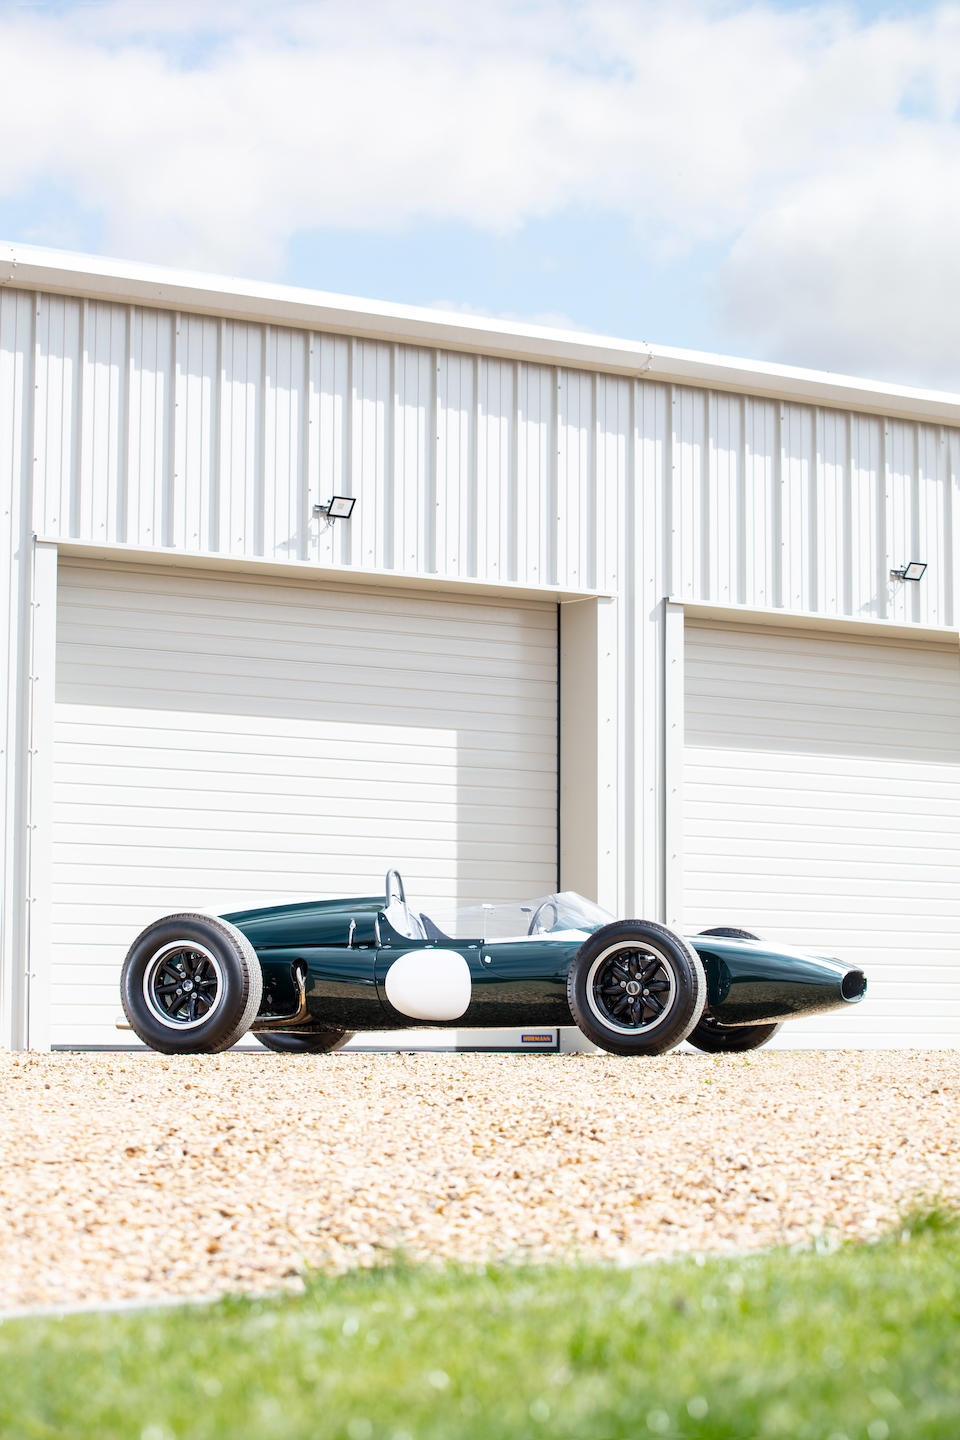 The ex-works, Sir Jack Brabham, Aintree '200', Levin, Lakeside, and Sandown Park-winning,1961 Cooper Climax 1.5-2.5-liter T55 'Slimline' Formula 1 & Tasman Racing Single-Seater  Chassis no. F1/10/61